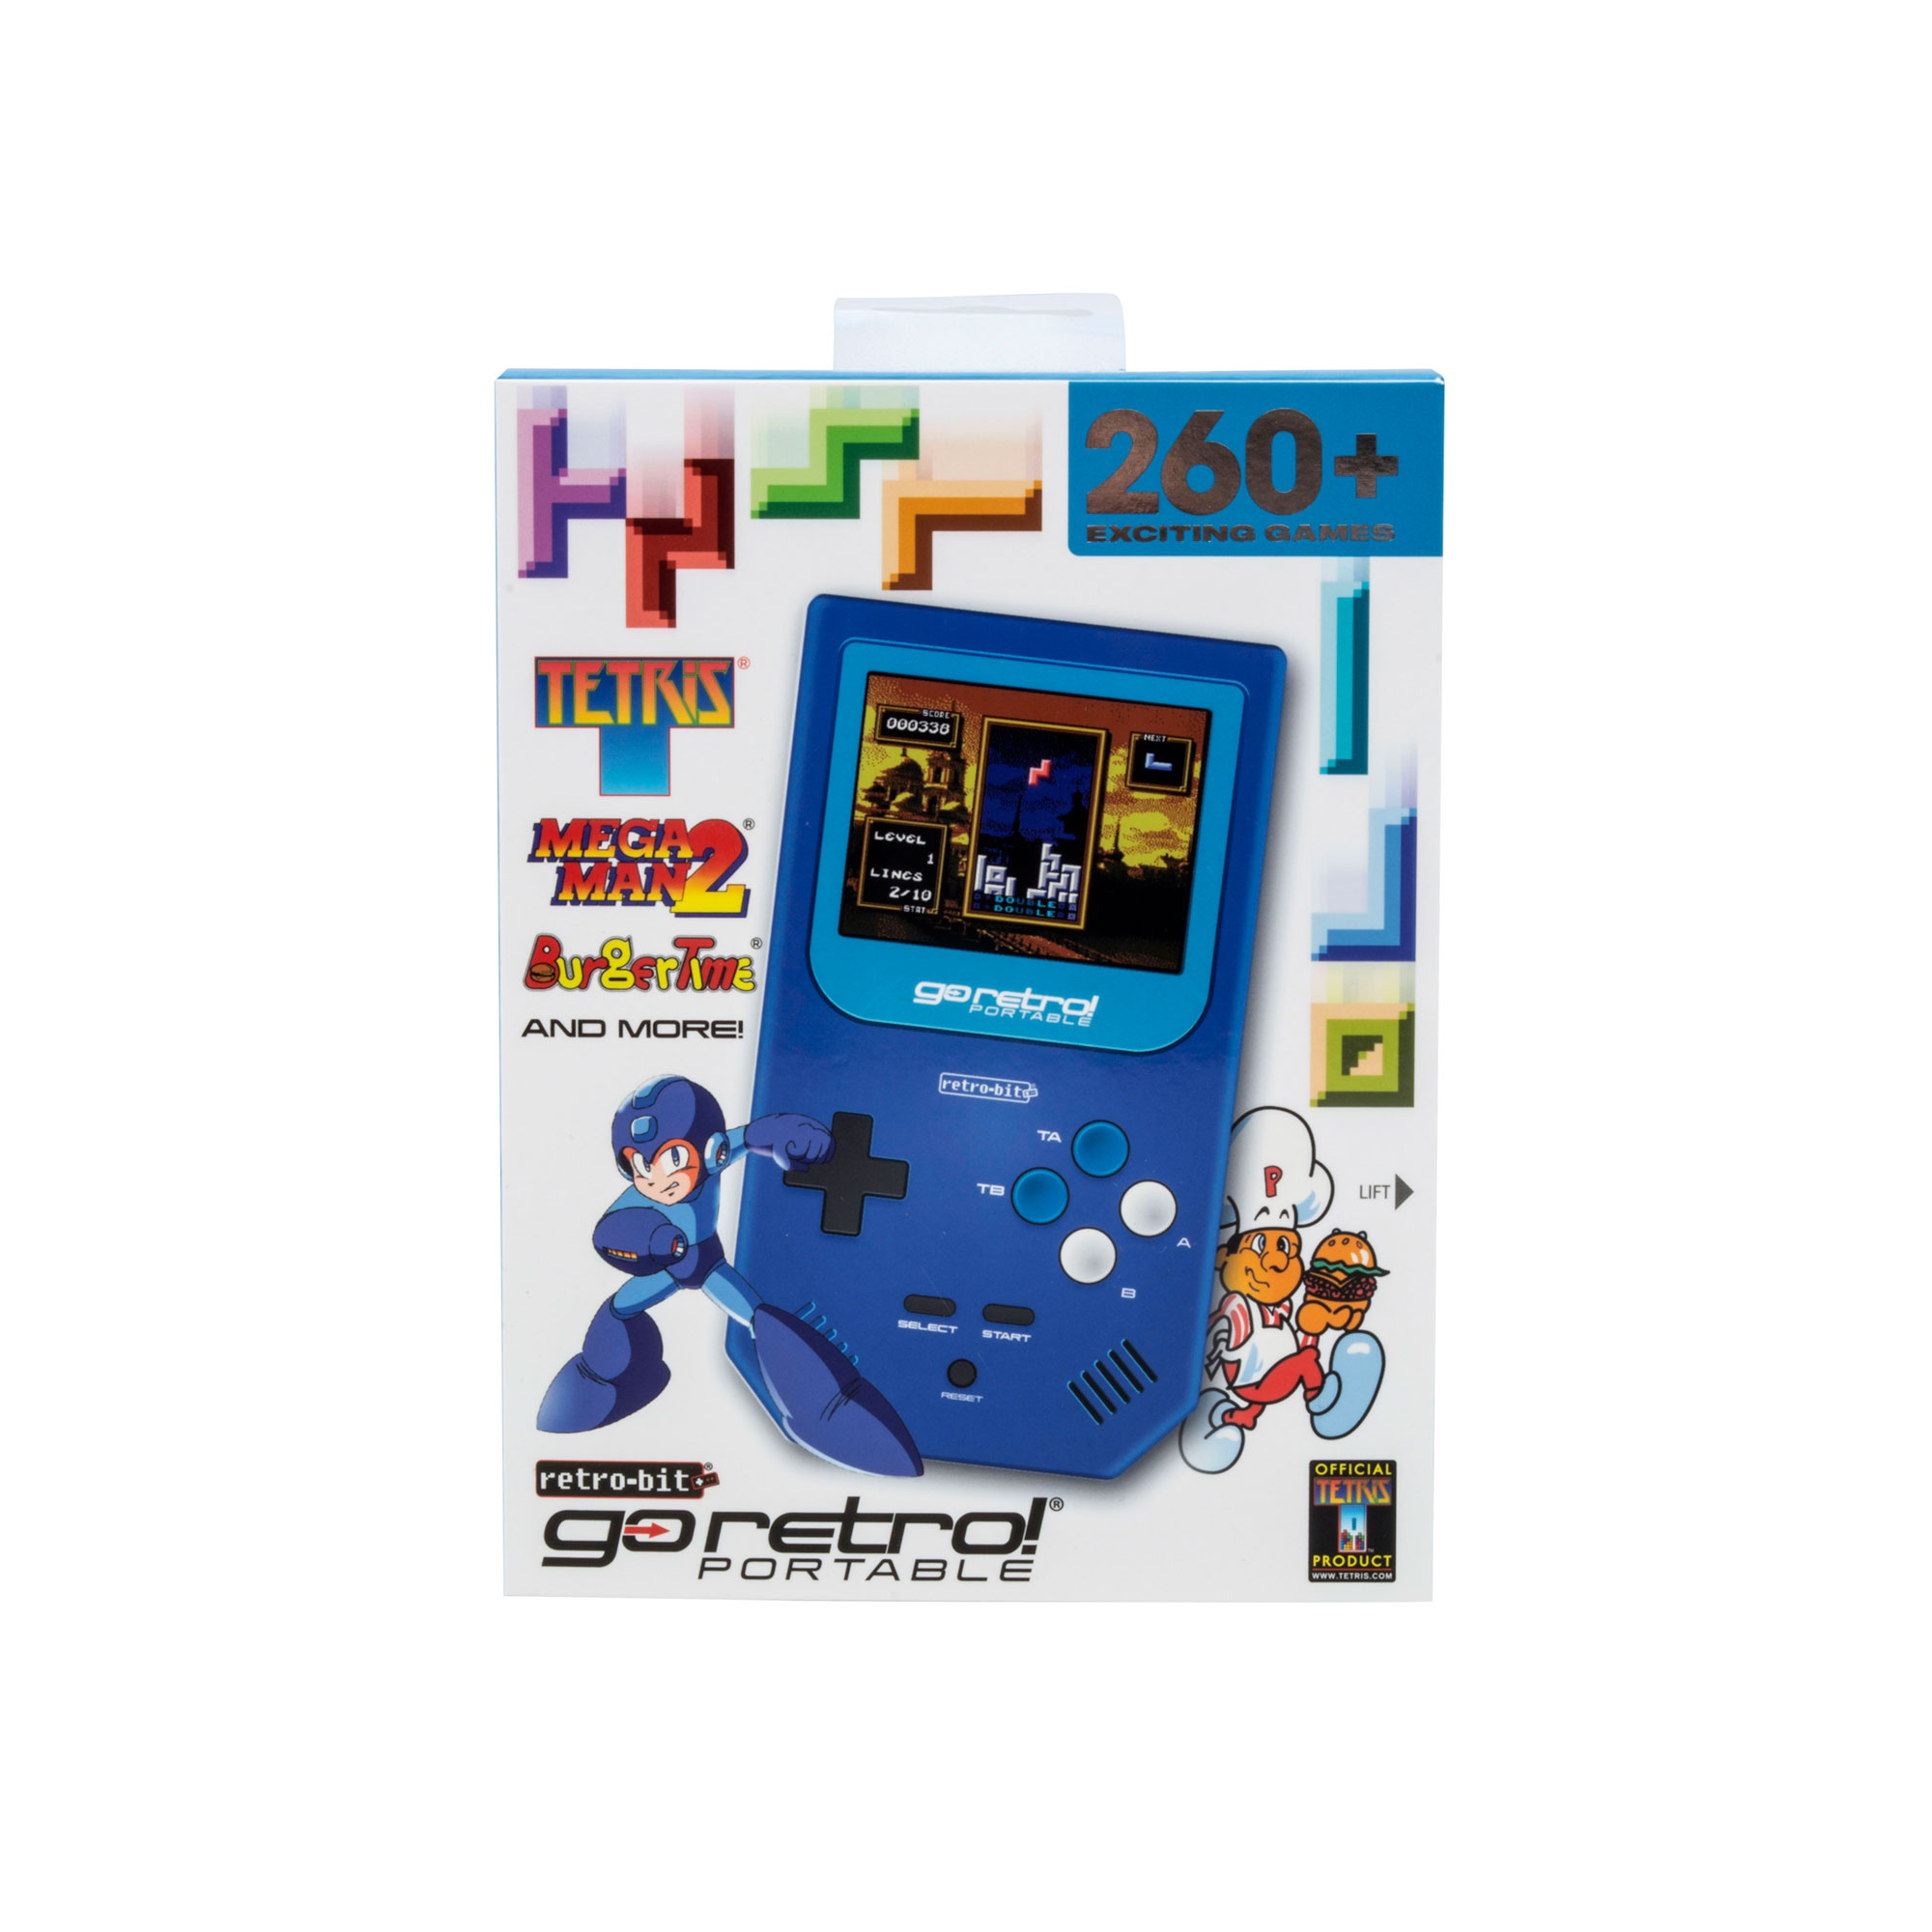 Retro-Bit Go Retro Portable, Blue, RB-PP-9929